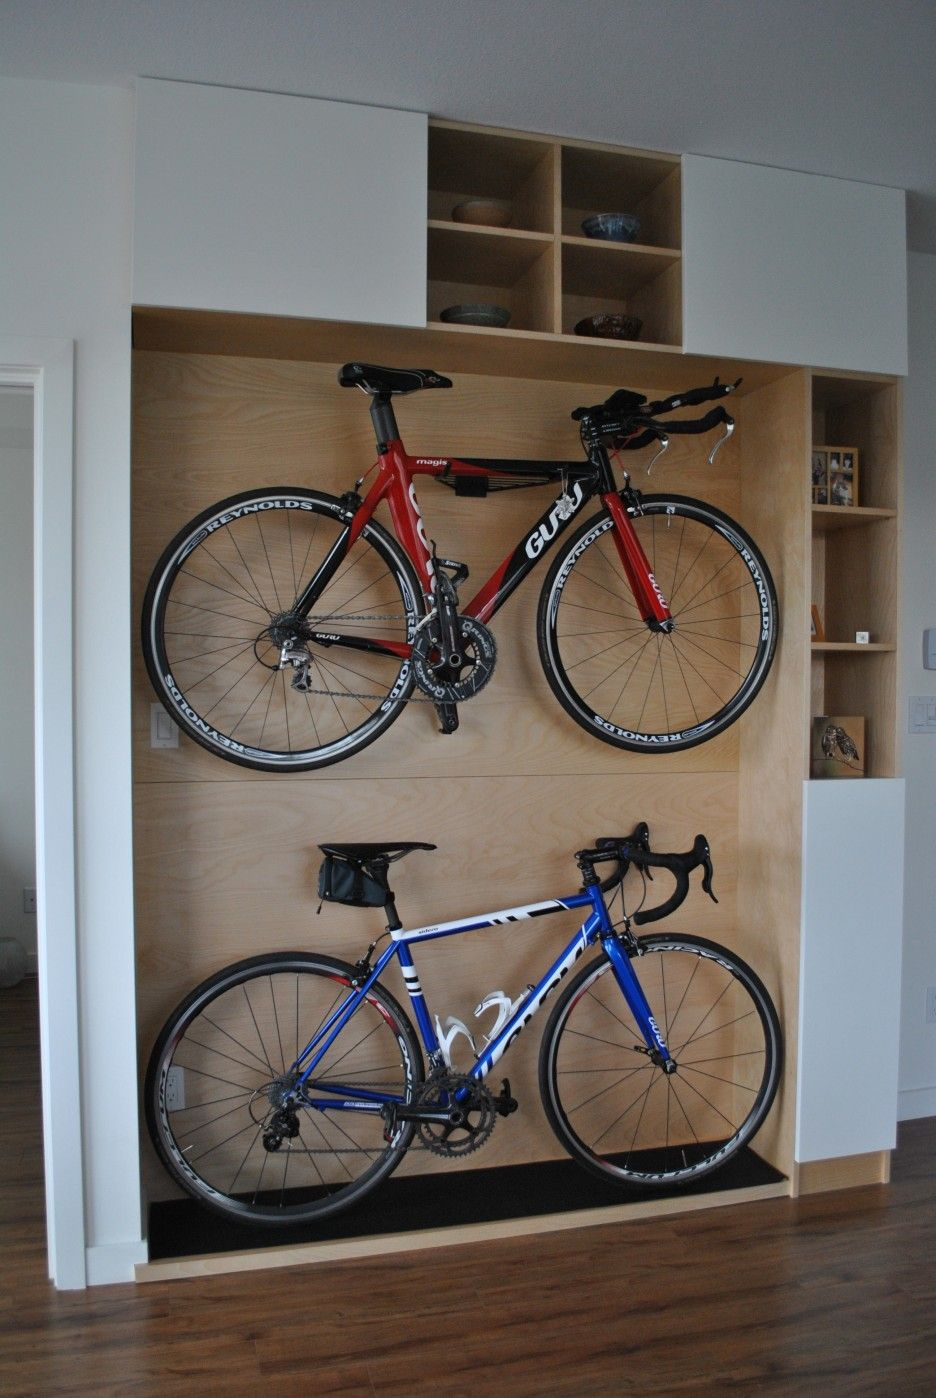 Home Bike Storage Bike Storage Apartment Bike Storage Indoor